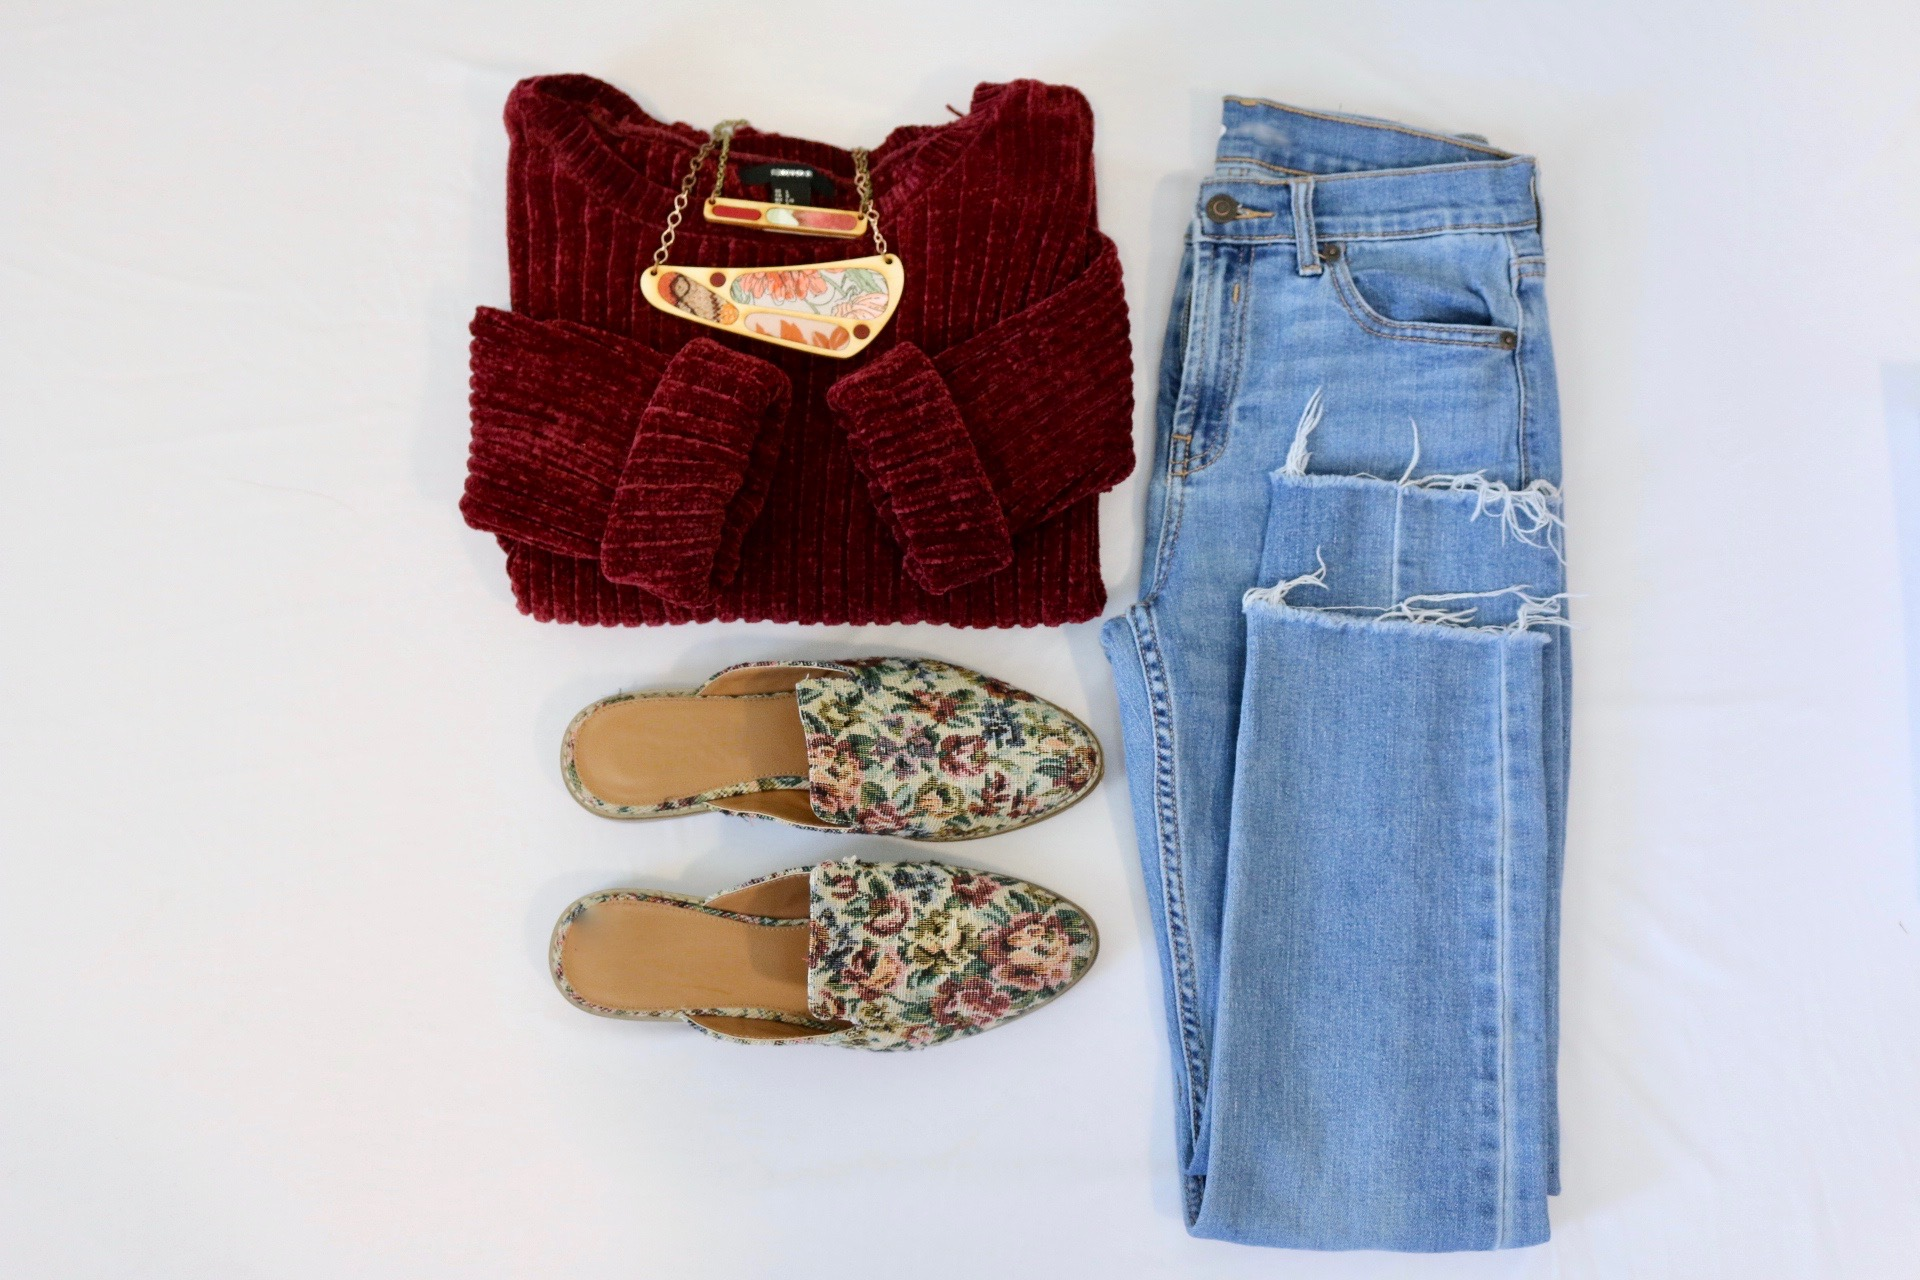 Red Sweater Paired with Regenerous DesignsNecklaces, jeans, and floral pattern shoes